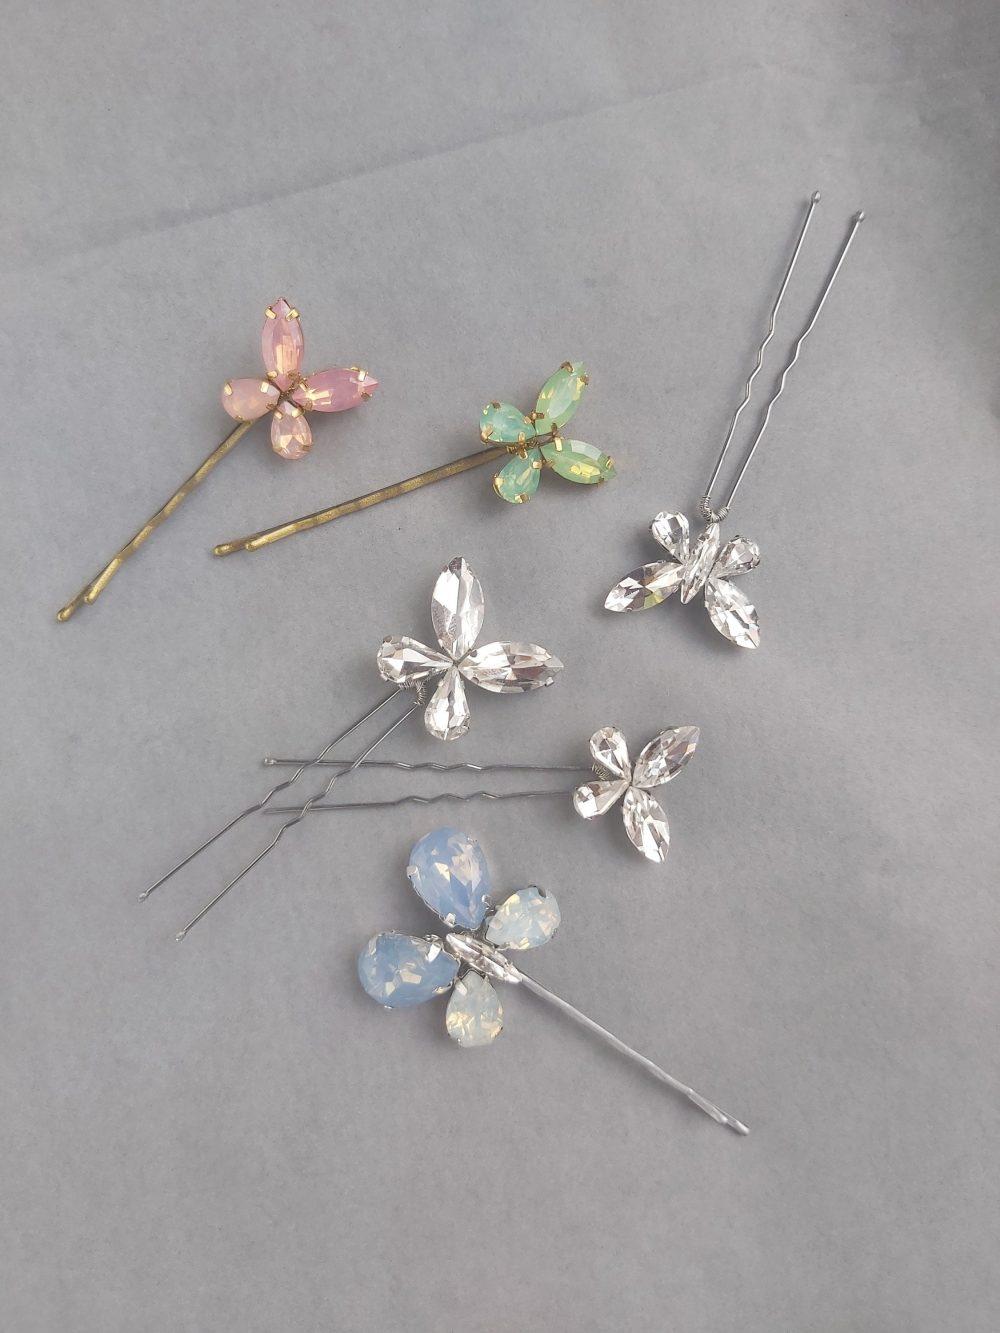 Butterfly Wedding Hair Piece Fairy Bride Accessory Crystal Pin Green Bobby Pins Gift Moonstone Clear Quartz Fluorite Rose